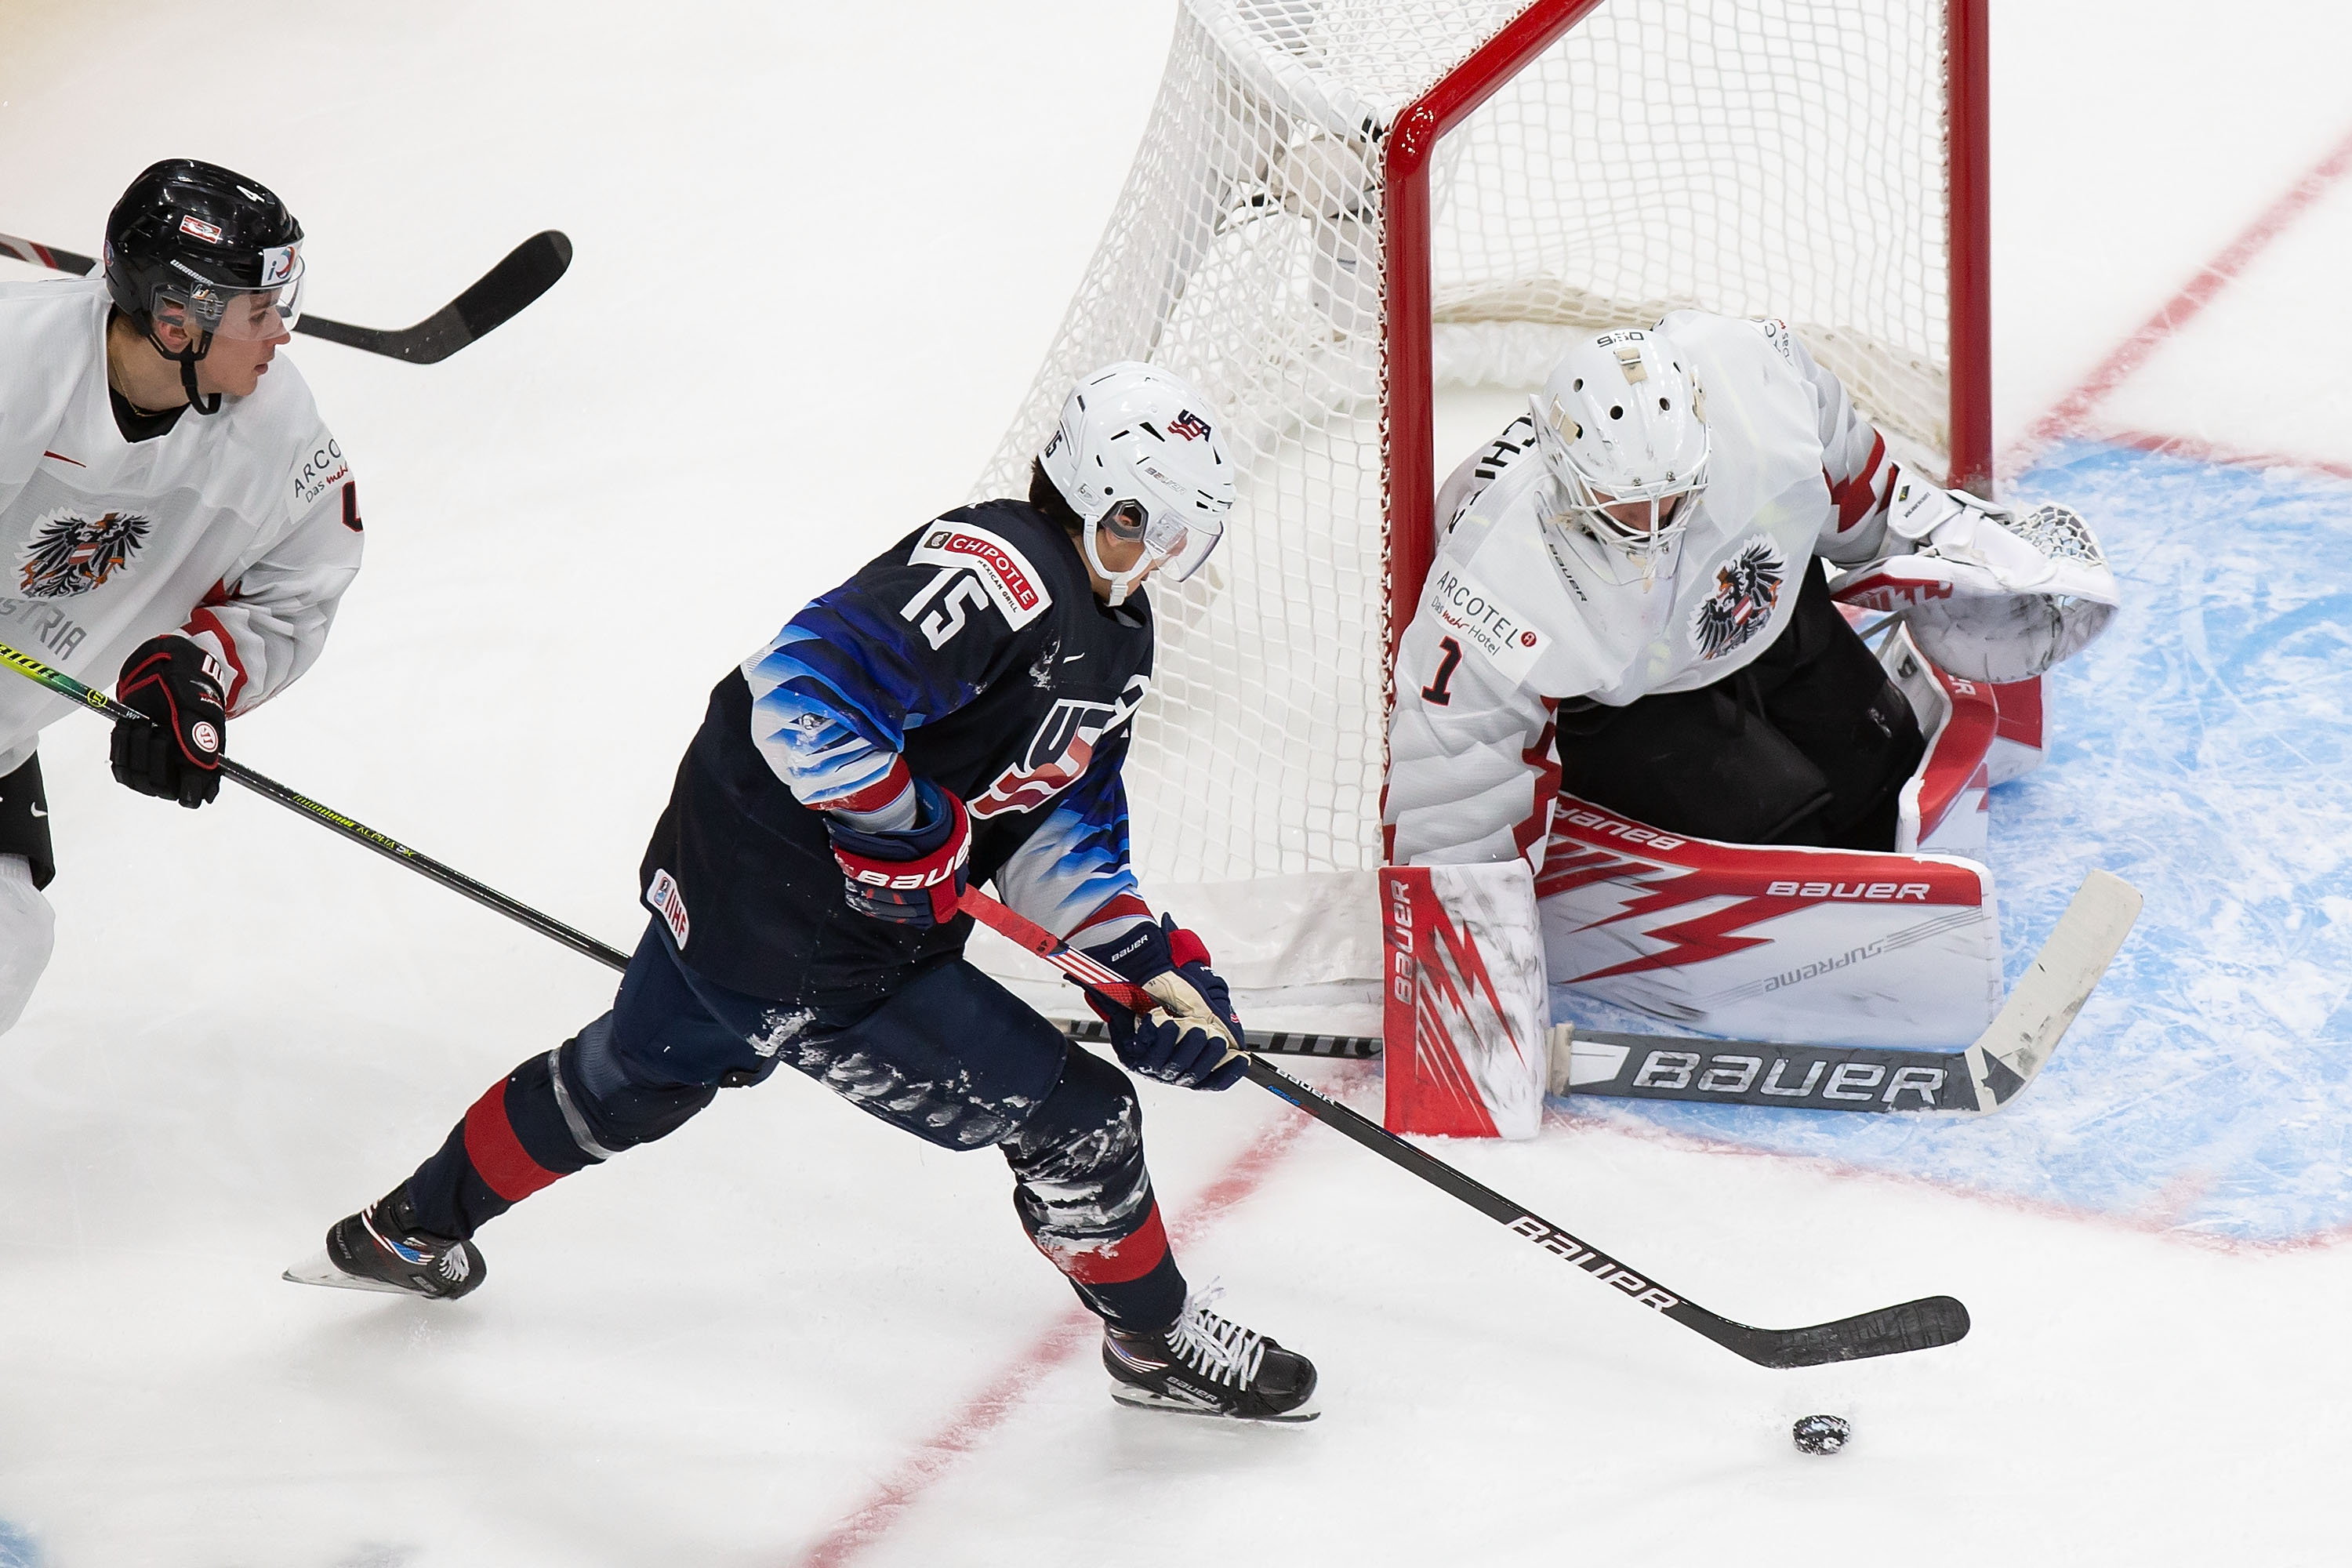 Alex Turcotte #15 of the United States looks for a shot against goaltender Sebastian Wraneschitz #1 of Austria during the 2021 IIHF World Junior Championship at Rogers Place on December 26, 2020 in Edmonton, Canada.